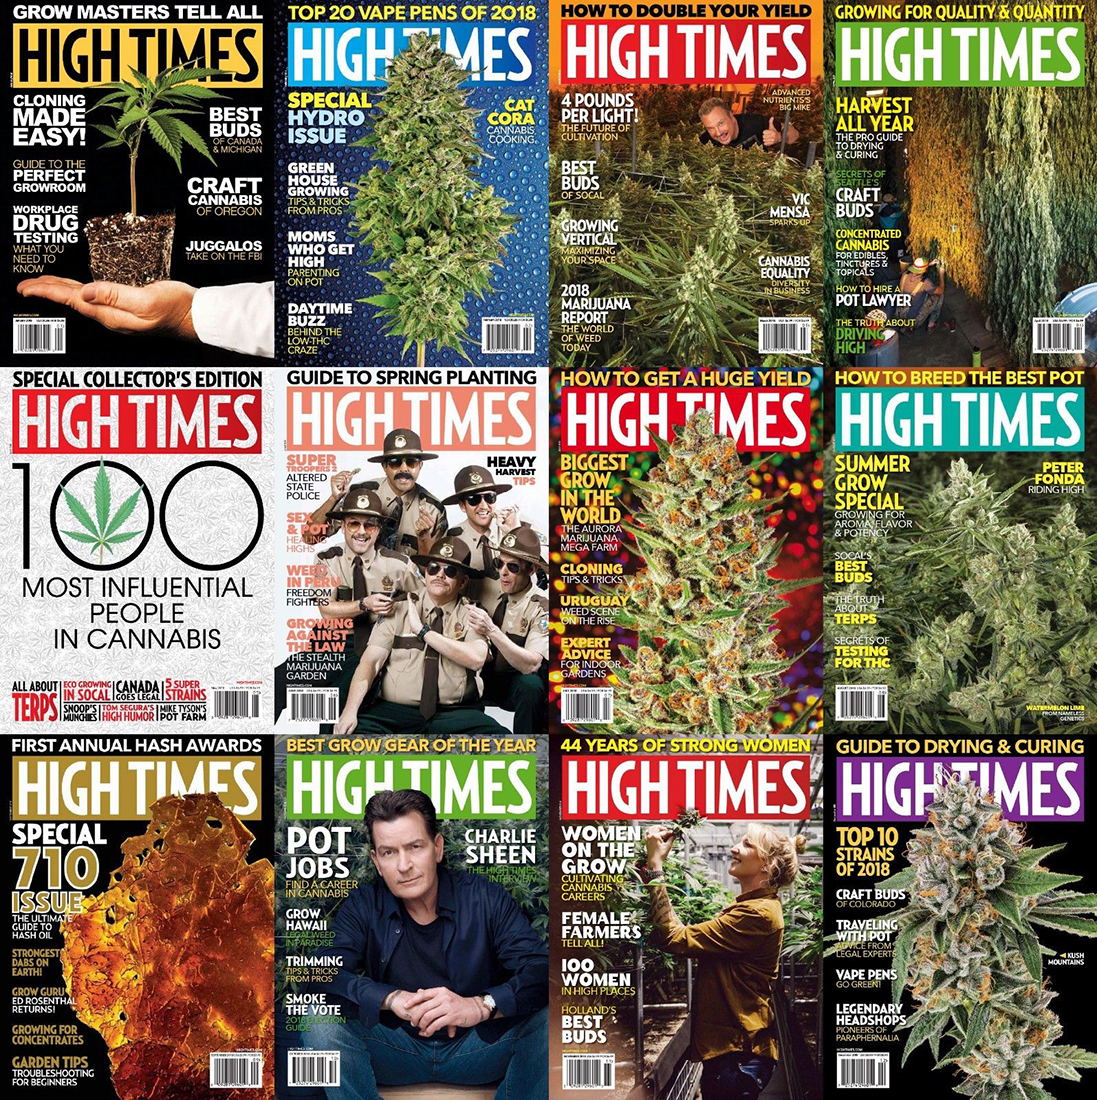 High Times - 2018,2017,2016 Full Year Issues [PDF]